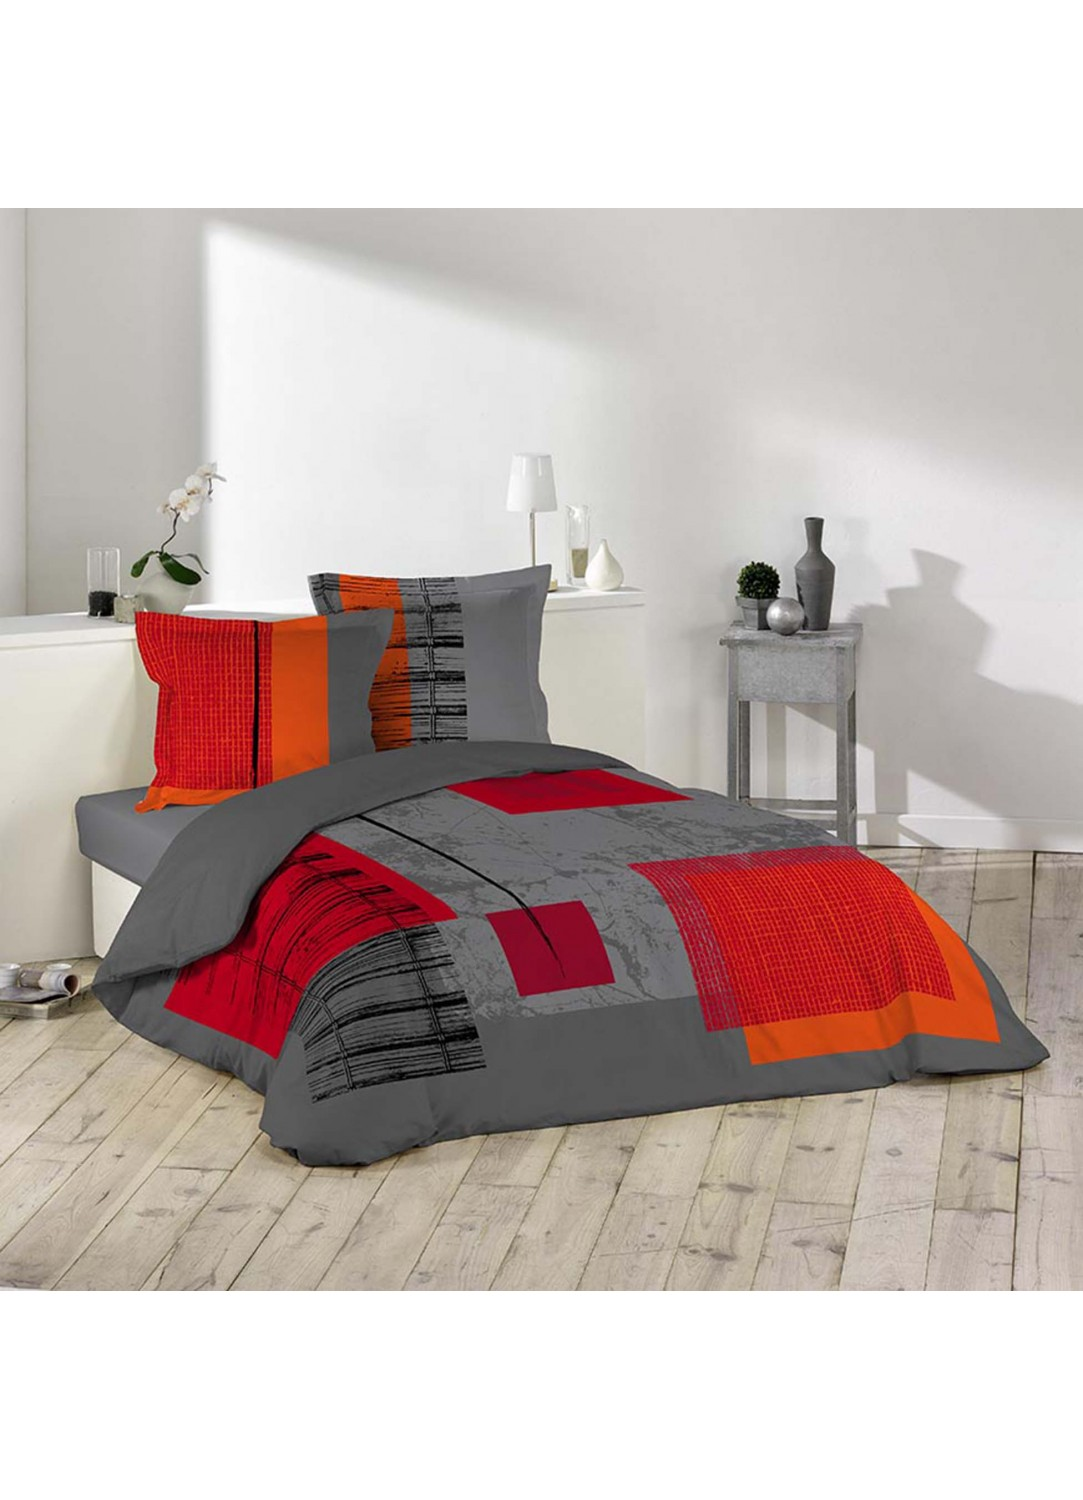 parure de lit 2 personnes quadro gris rouge. Black Bedroom Furniture Sets. Home Design Ideas